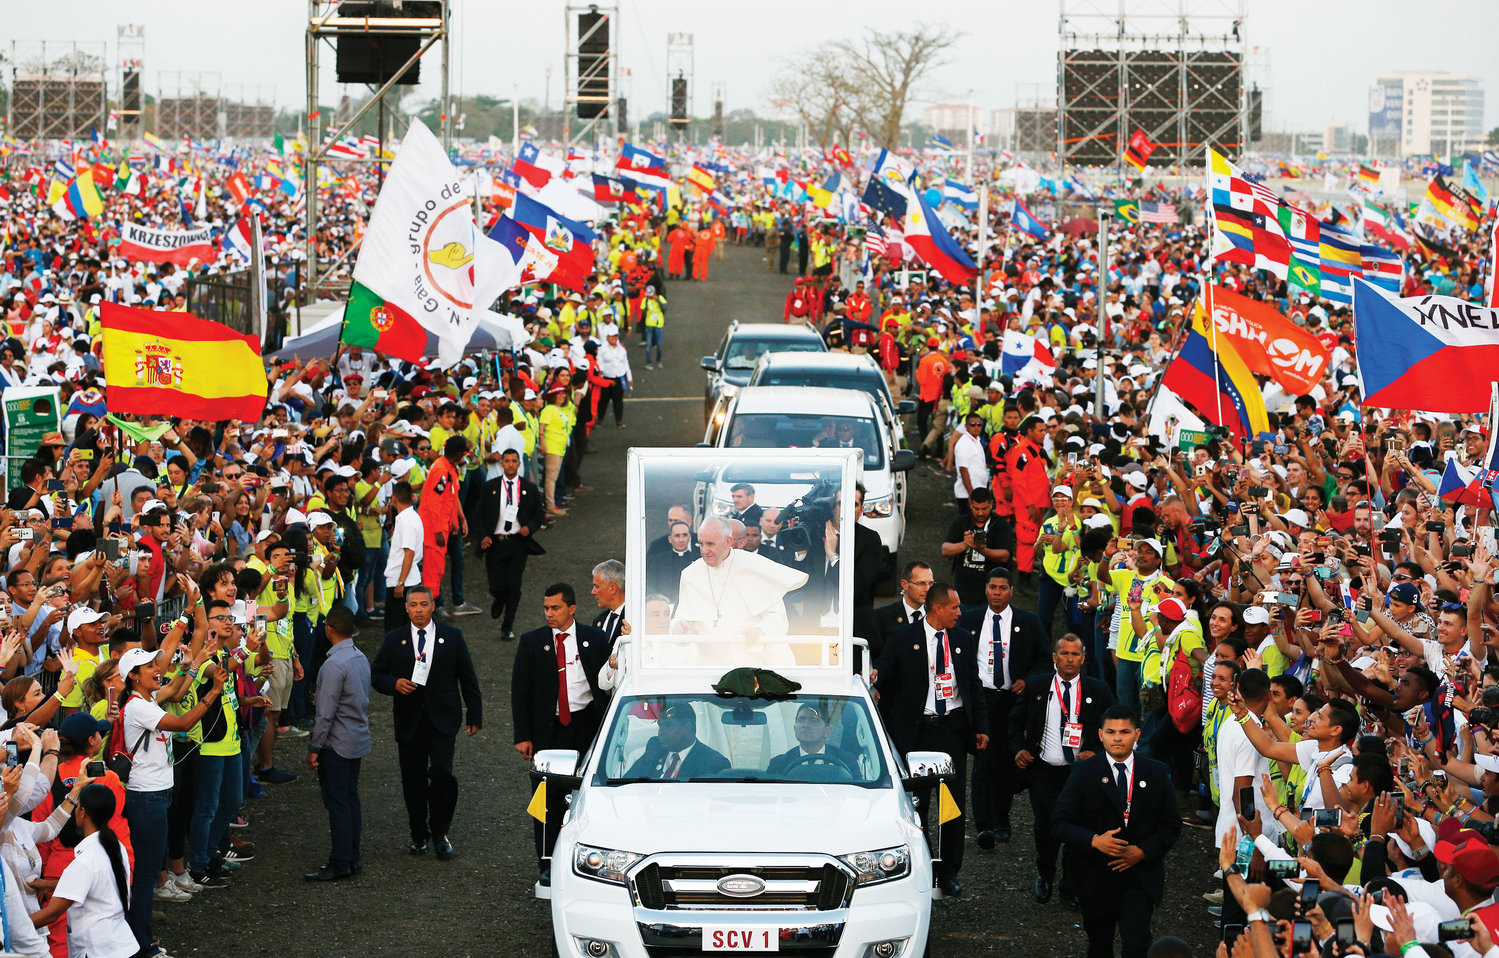 Pope Francis arrives amid people and flags Jan. 25 for the vigil service of World Youth Day in Panama.